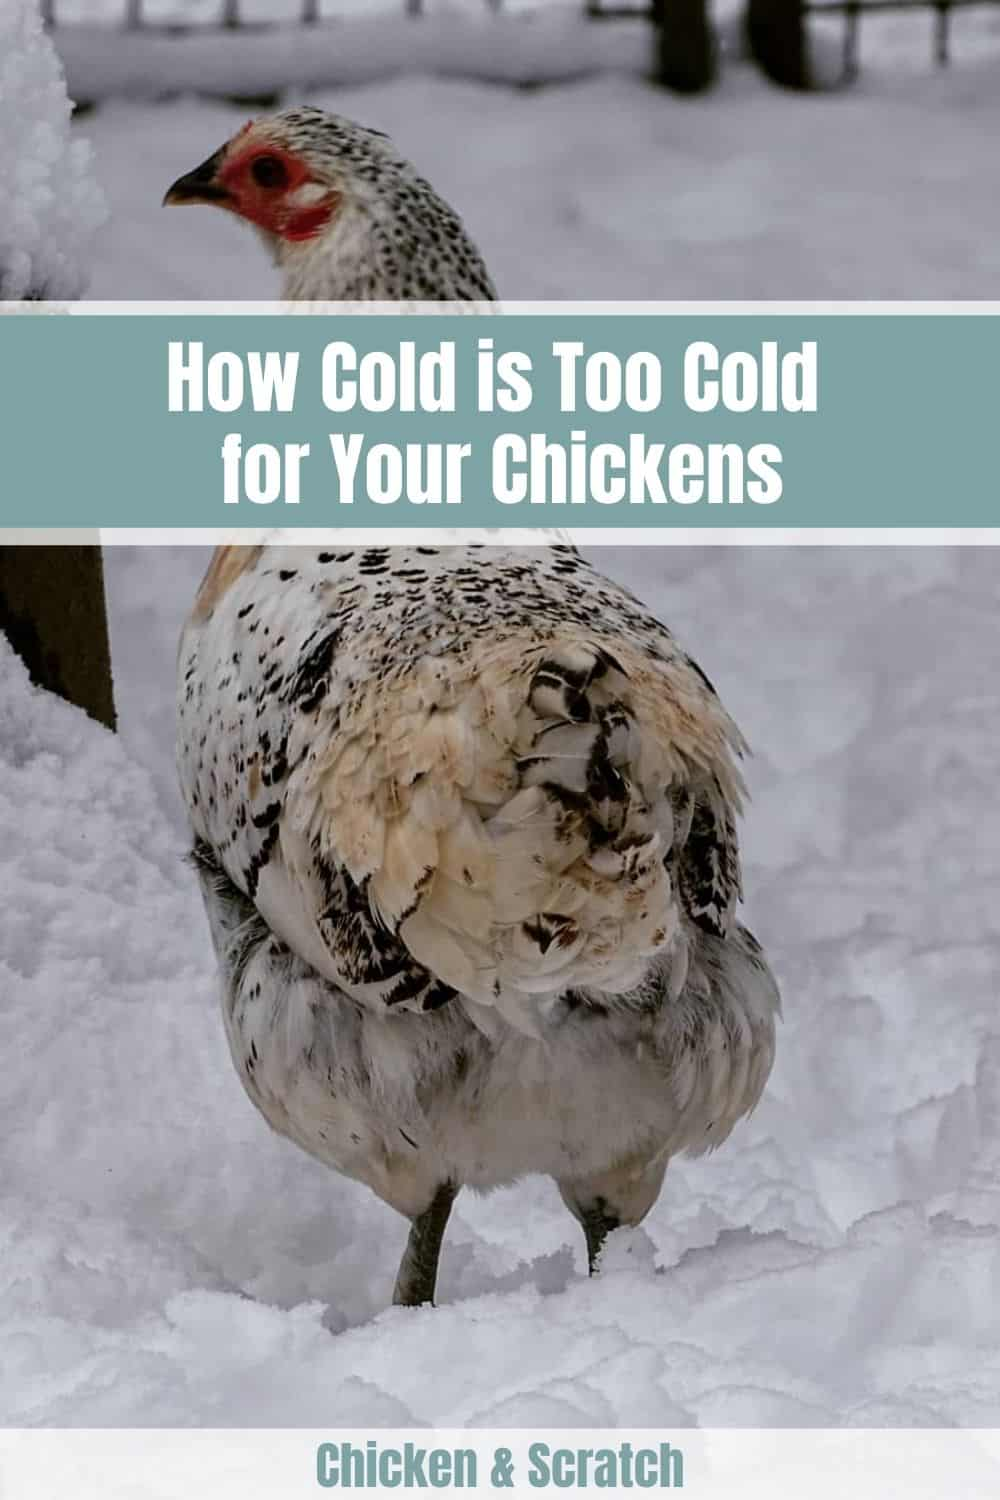 chickens in cold weather